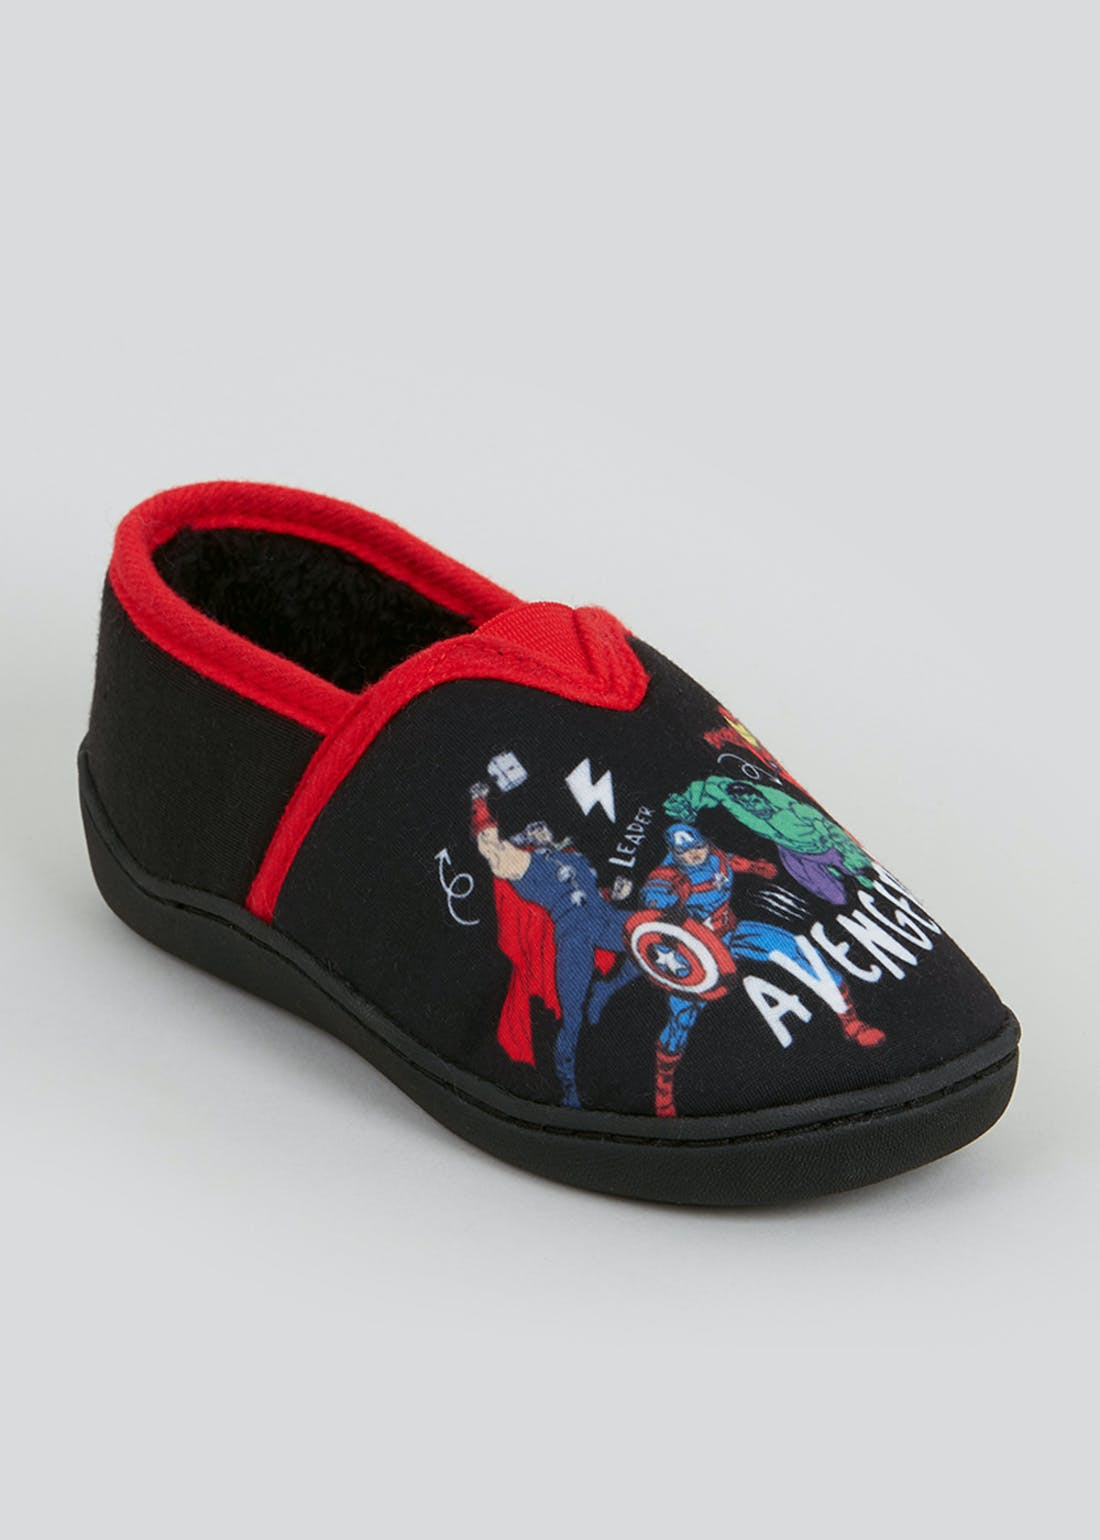 Kids Black Co-Ord Avengers Slippers (Younger 7-13)